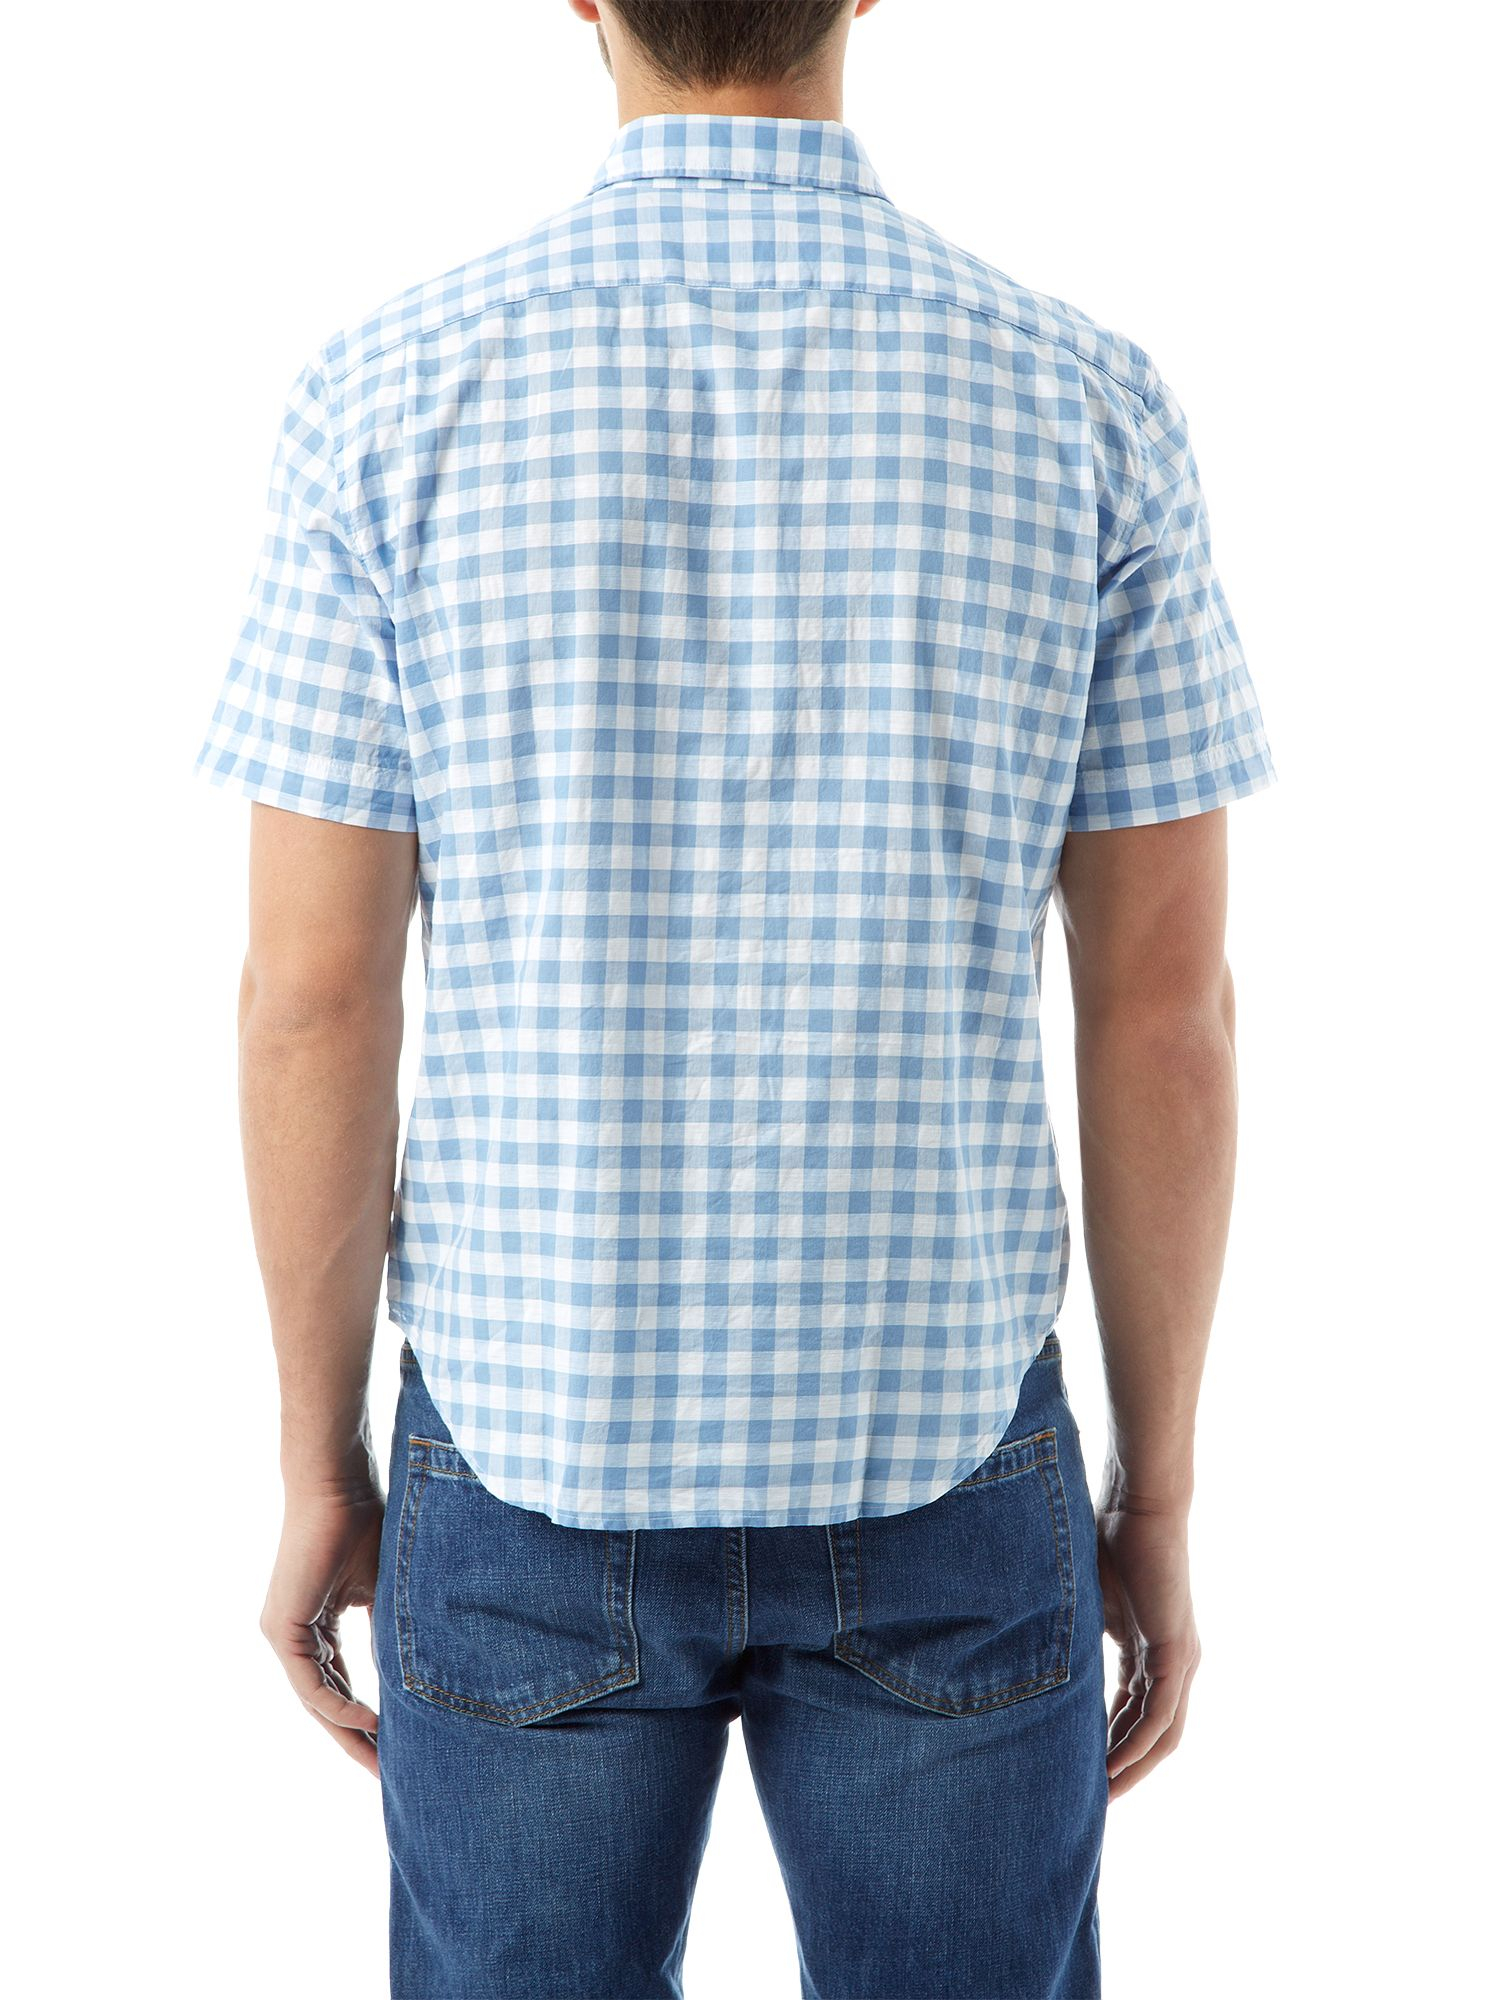 Lacoste Gingham Short Sleeve Button Down Shirt In Blue For